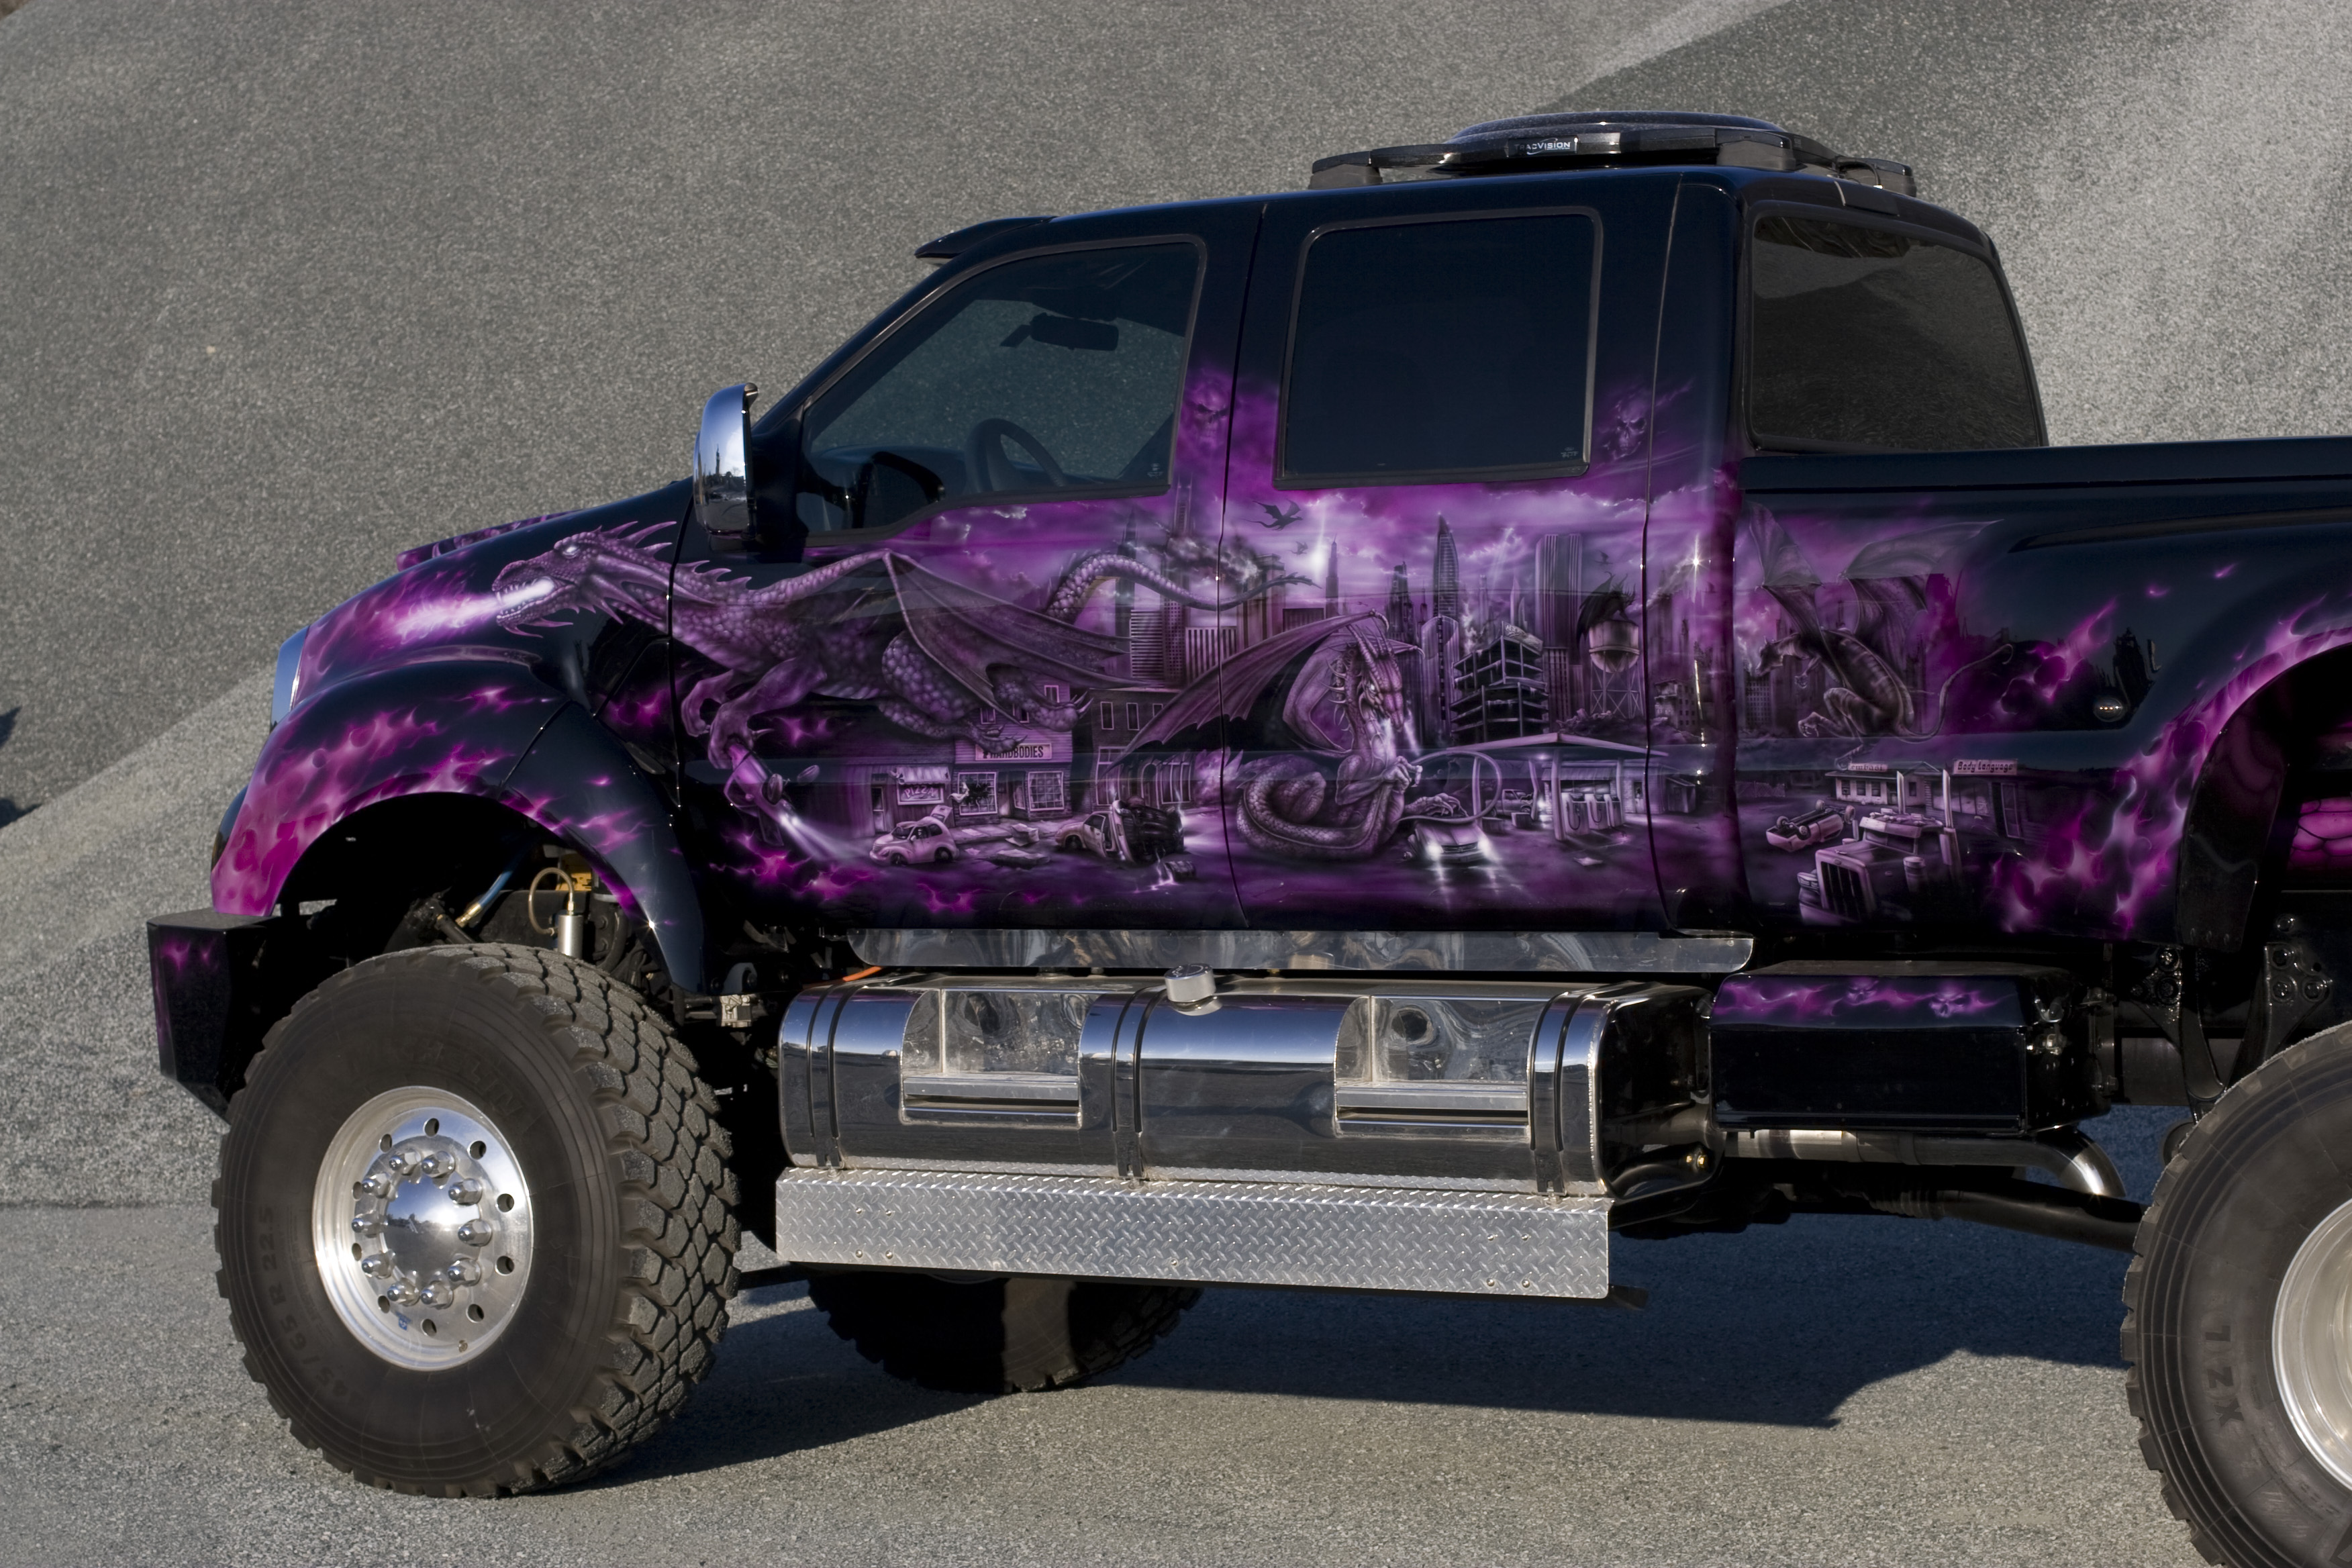 Exterior interior afterfx customs for Car paint designs pictures